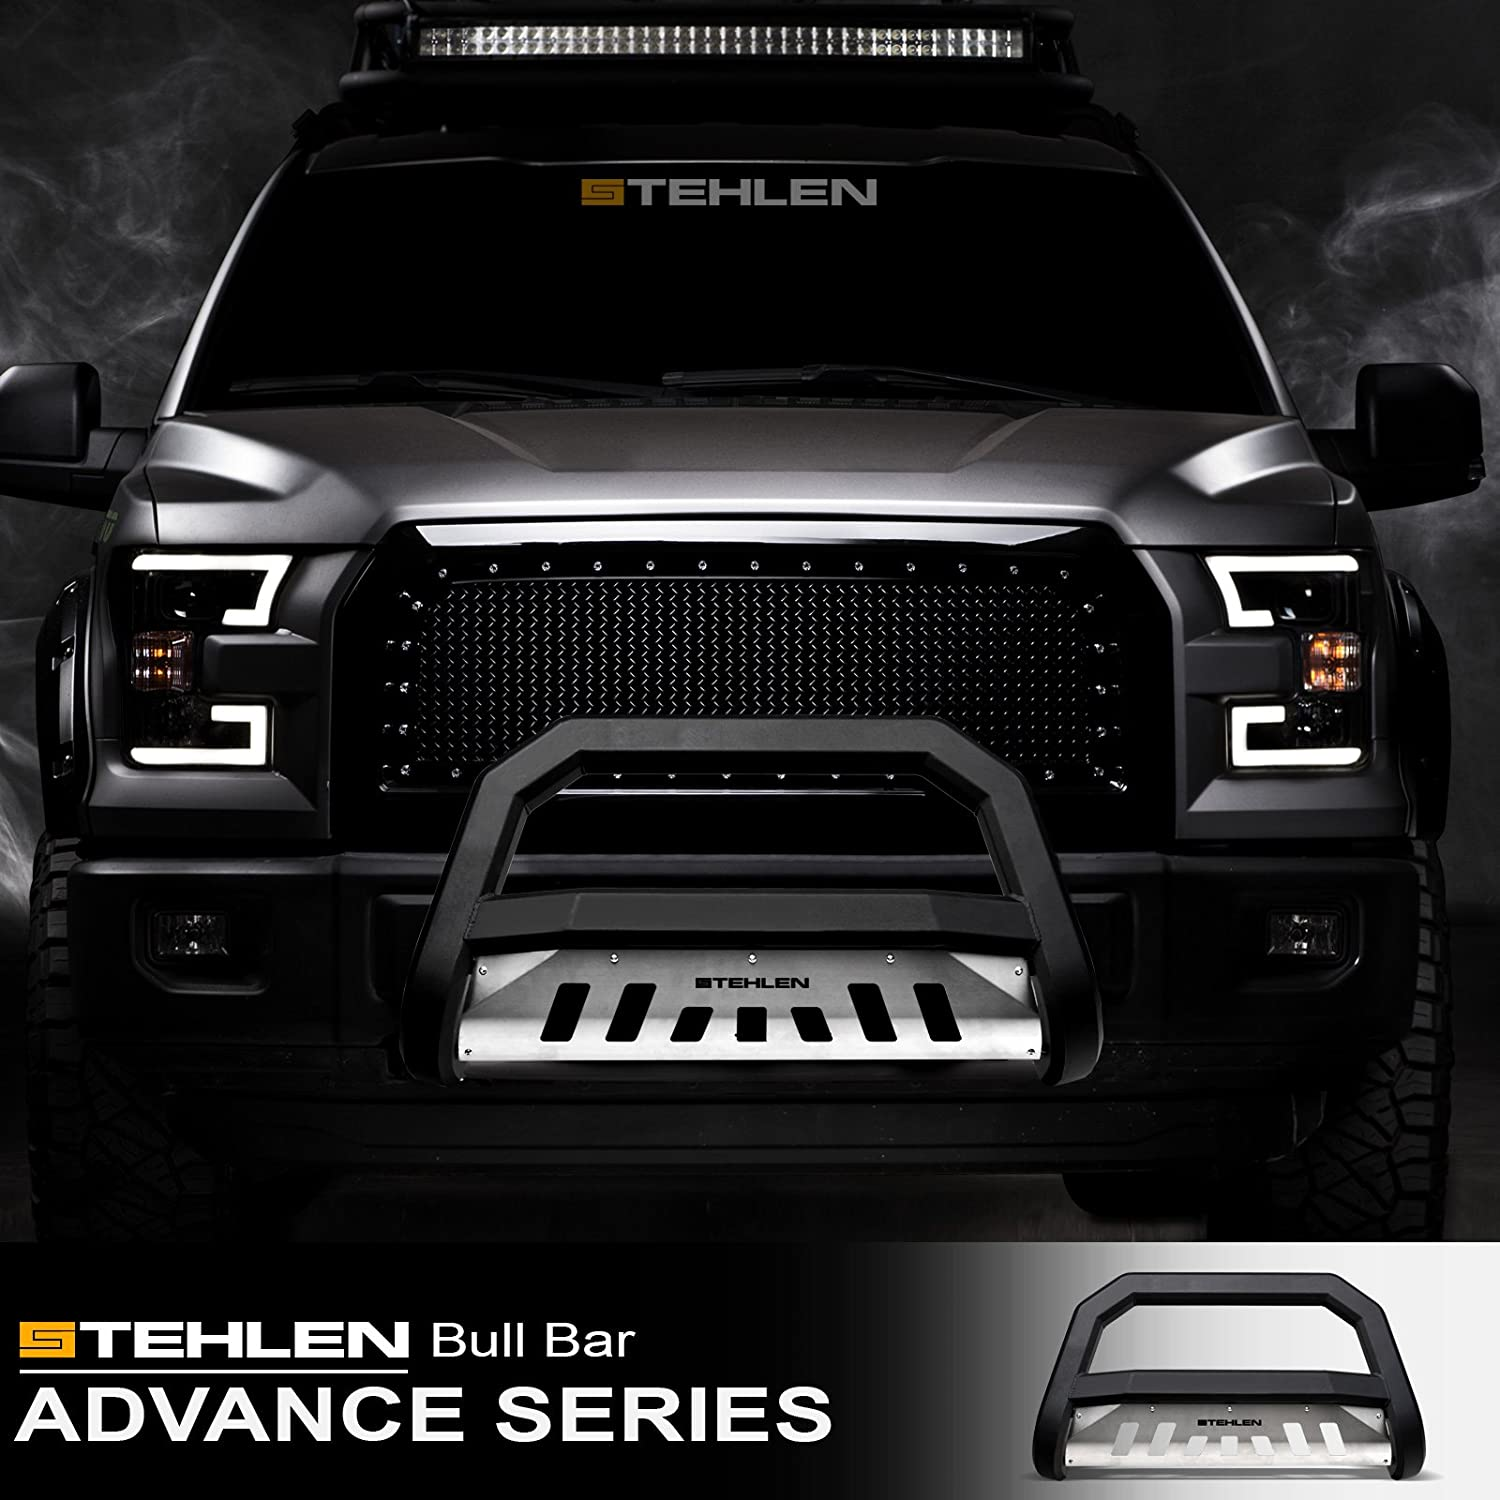 Matte Black//Brush Aluminum Skid Plate Stehlen 714937183766 Advance Series Bull Bar